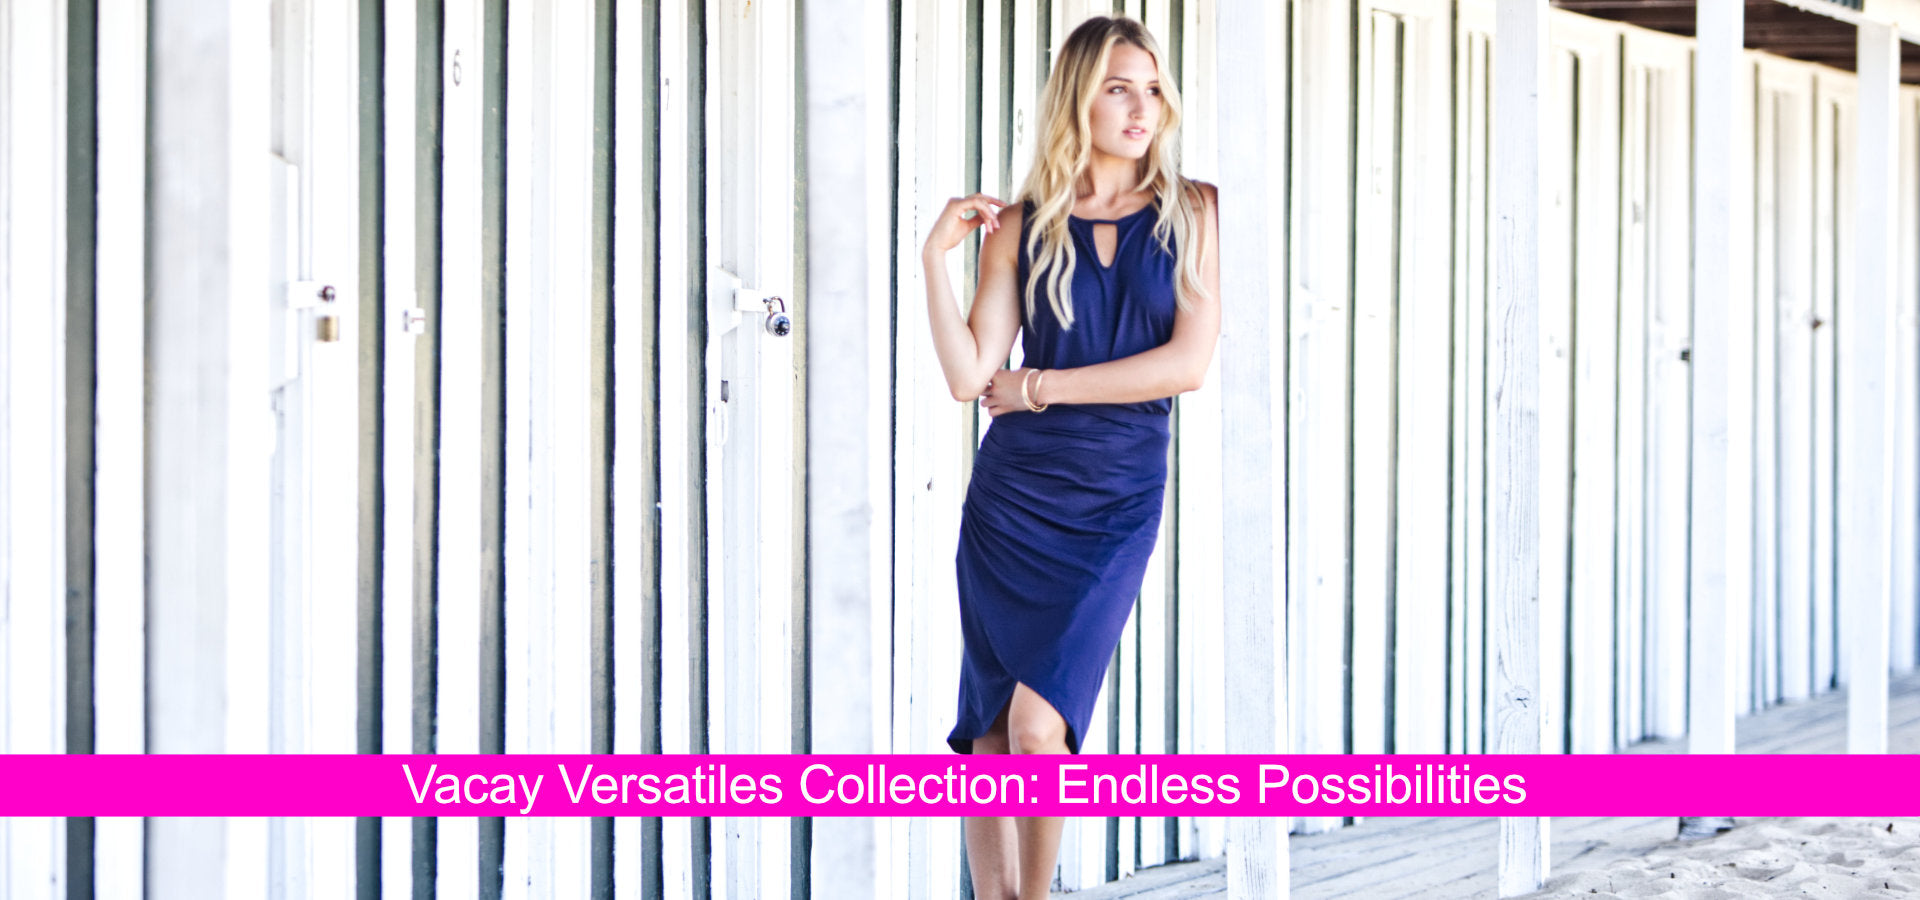 Vacay Vesatiles Collection: Endless Possibilities